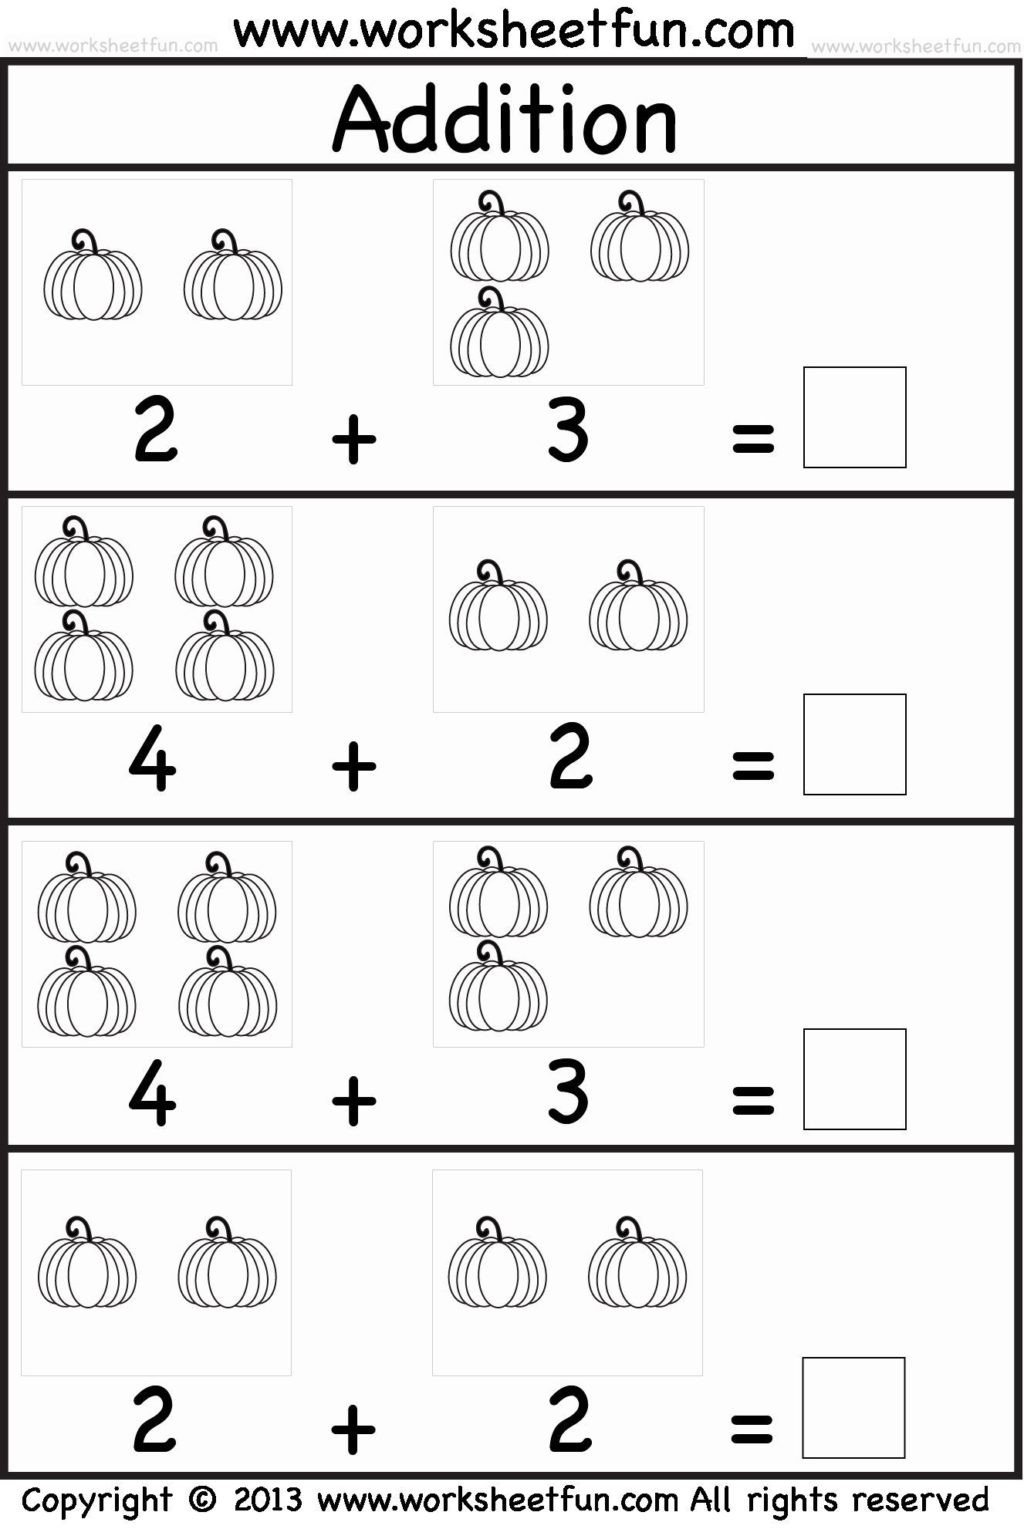 k5 learning worksheets printable worksheets and activities for 2